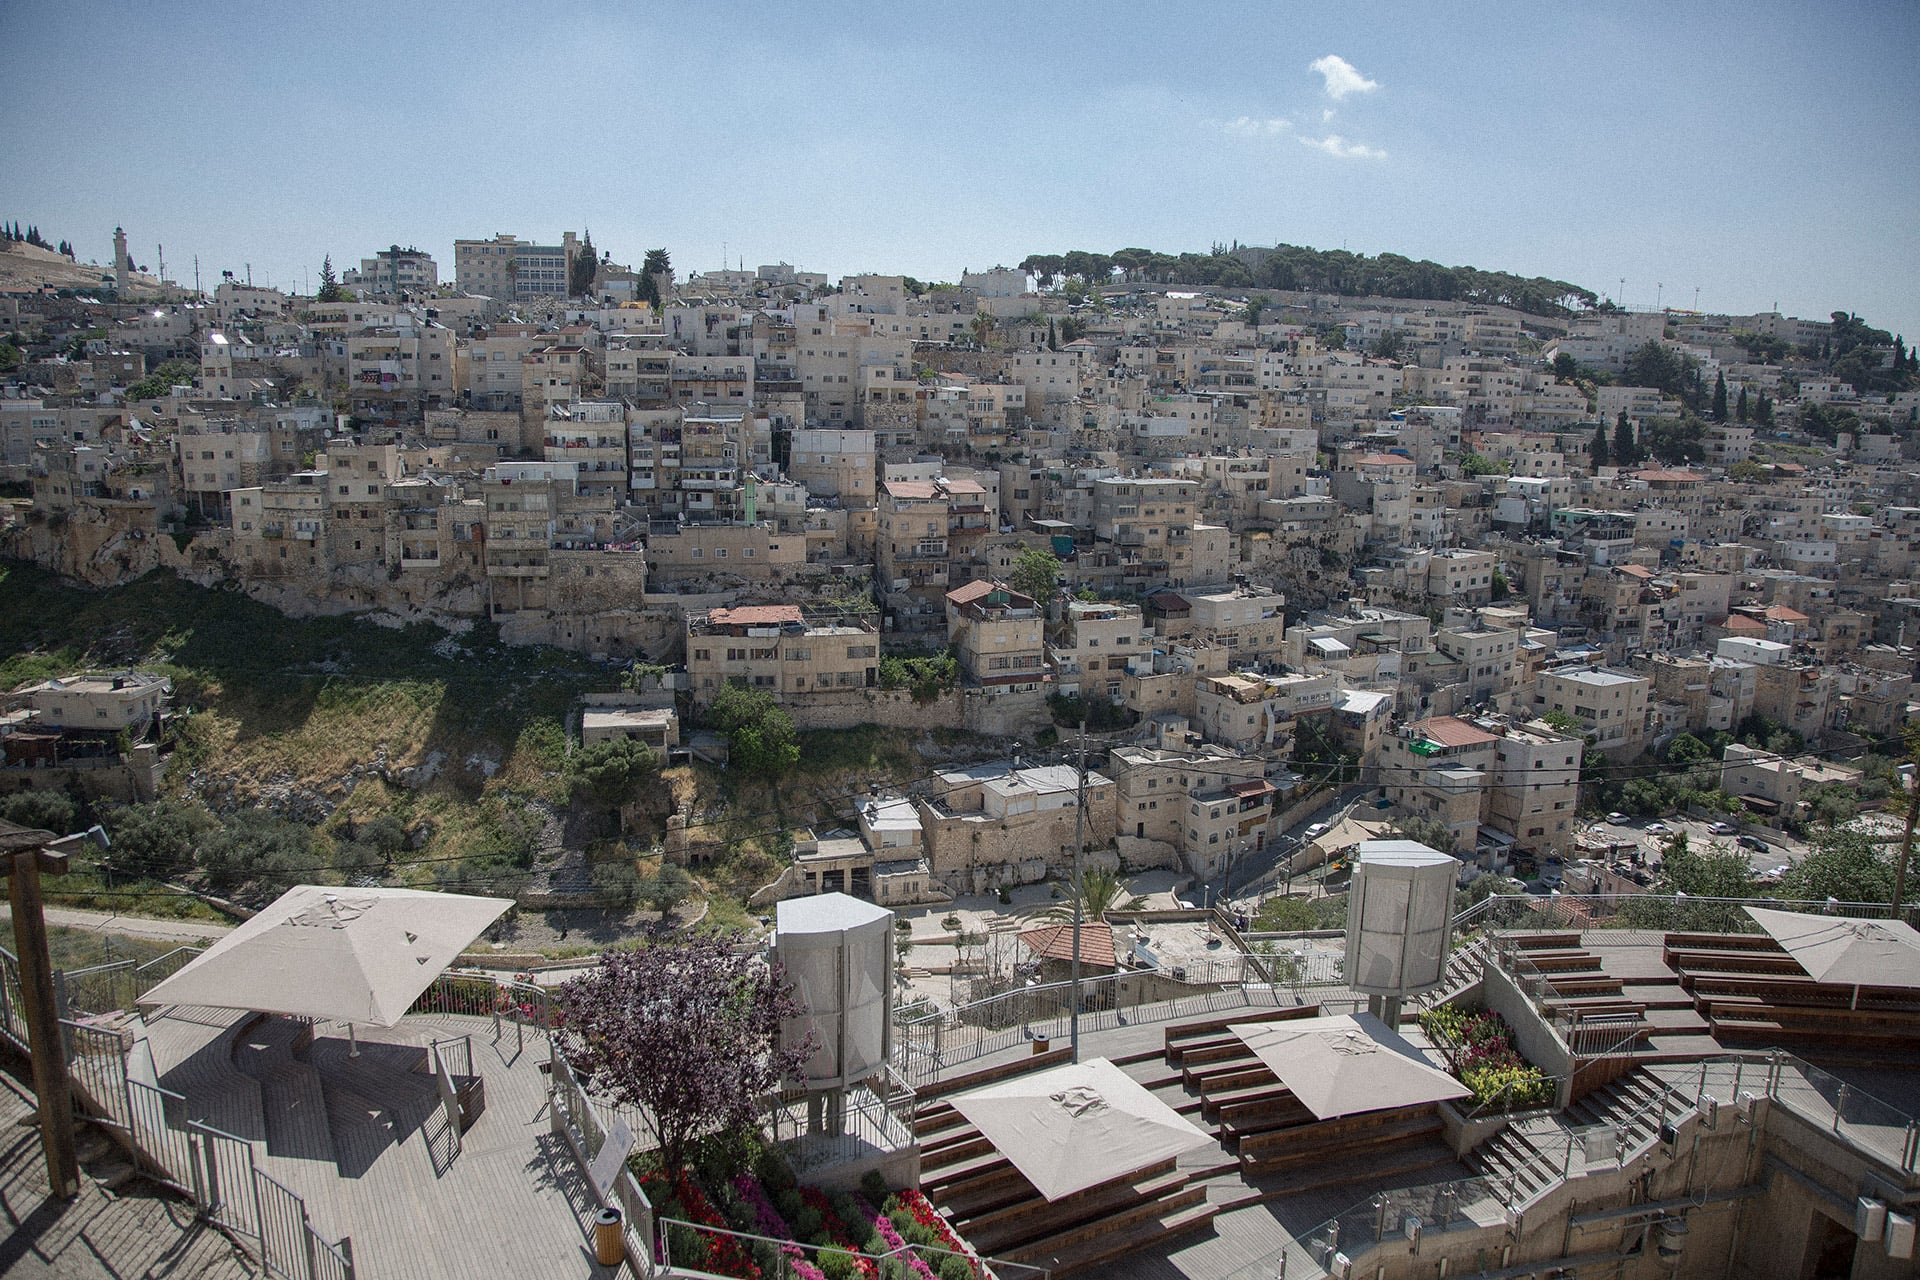 East Jerusalem's Silwan neighborhood sits south of the Old City. (Photo: DCIP / Faiz Abu Rmeleh)